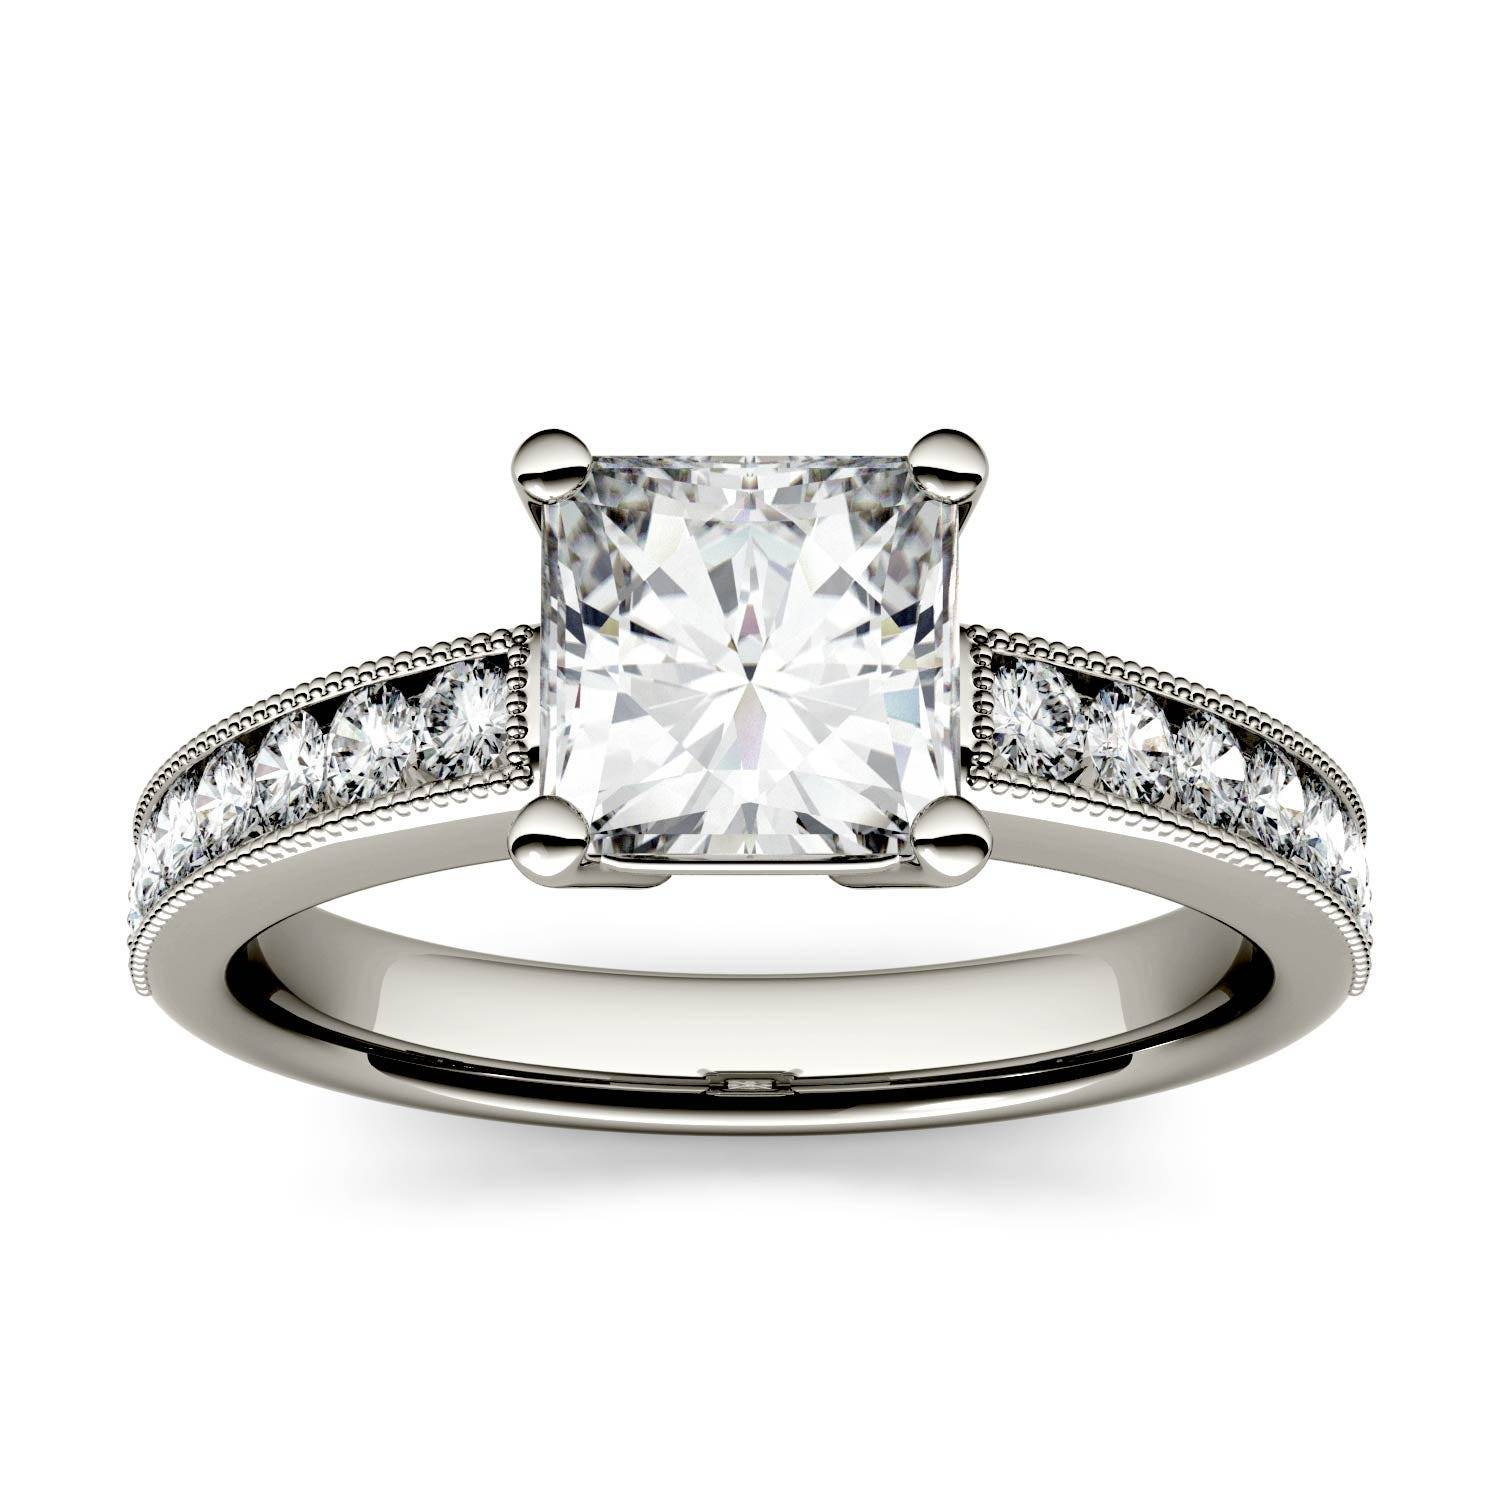 Charles & Colvard Solitaire with Milgrain Side Accents Engagement Ring in 14K White Gold, Size: 7, 1.42CTW Square Forever One - Colorless Moissanite Charles & Colvard  - White Gold - Size: 7